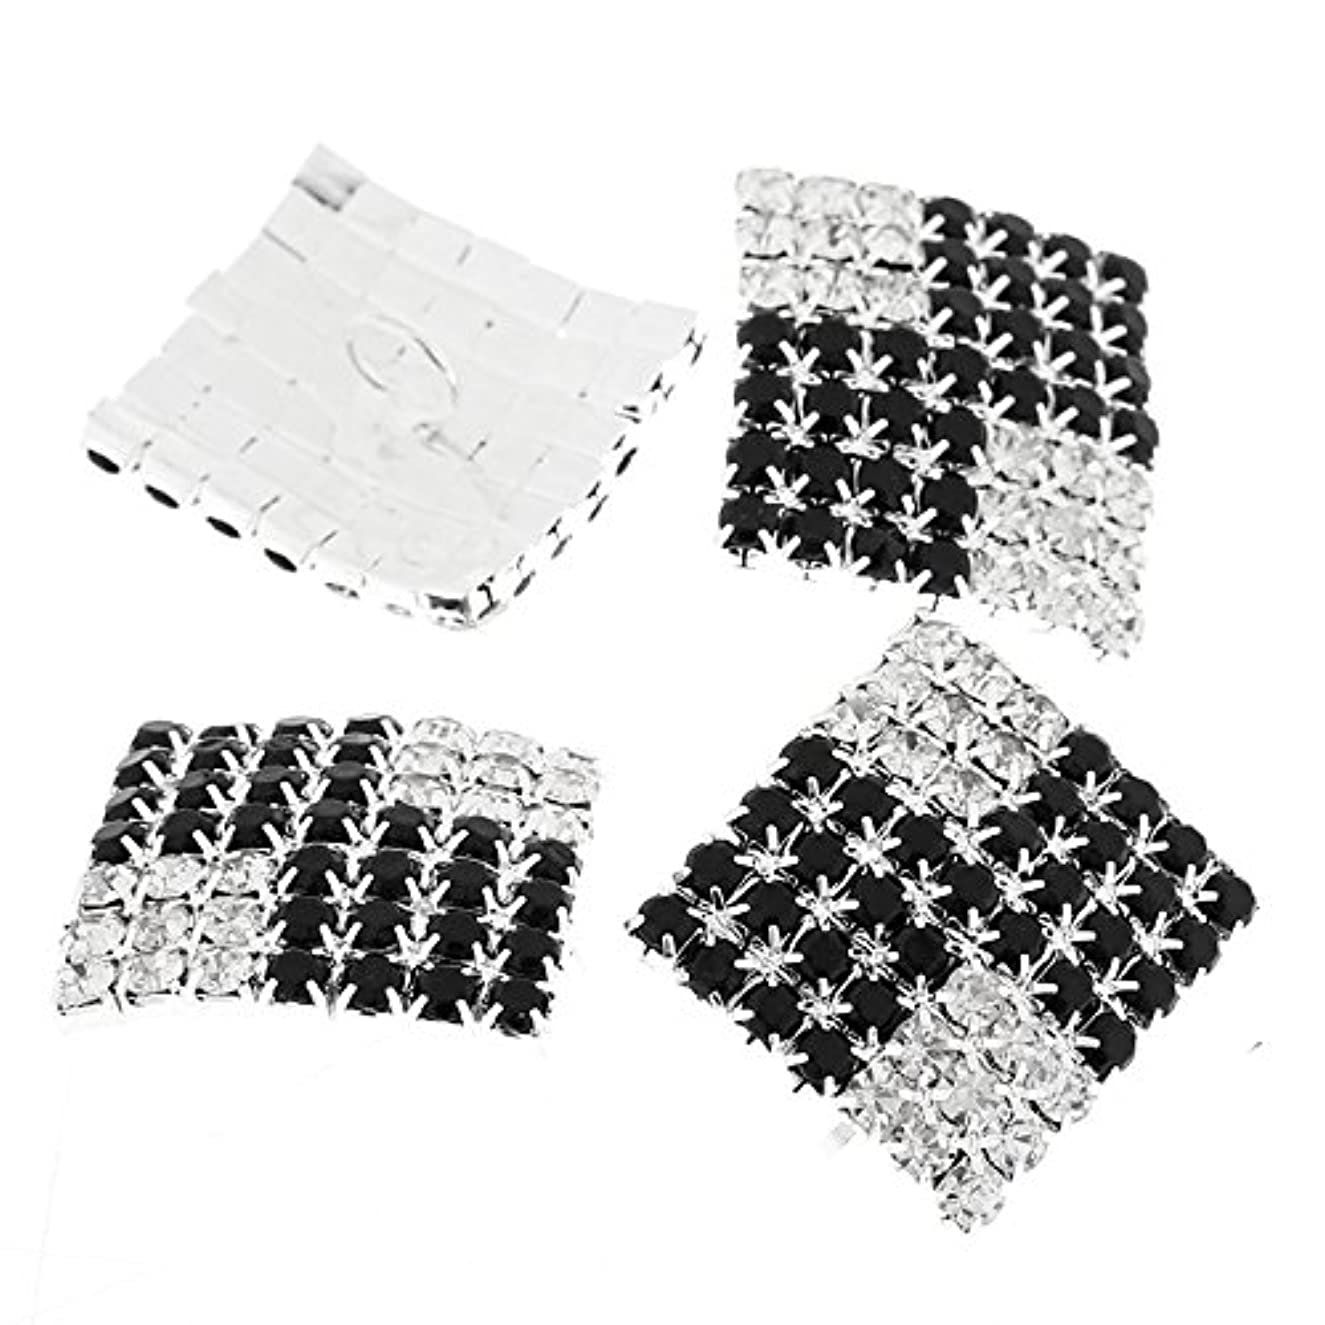 PEPPERLONELY Brand 3PC Silver Plated Diamond Scrapbooking Sewing Rhinestone Buttons 28x25mm(1-1/8x1 Inch)